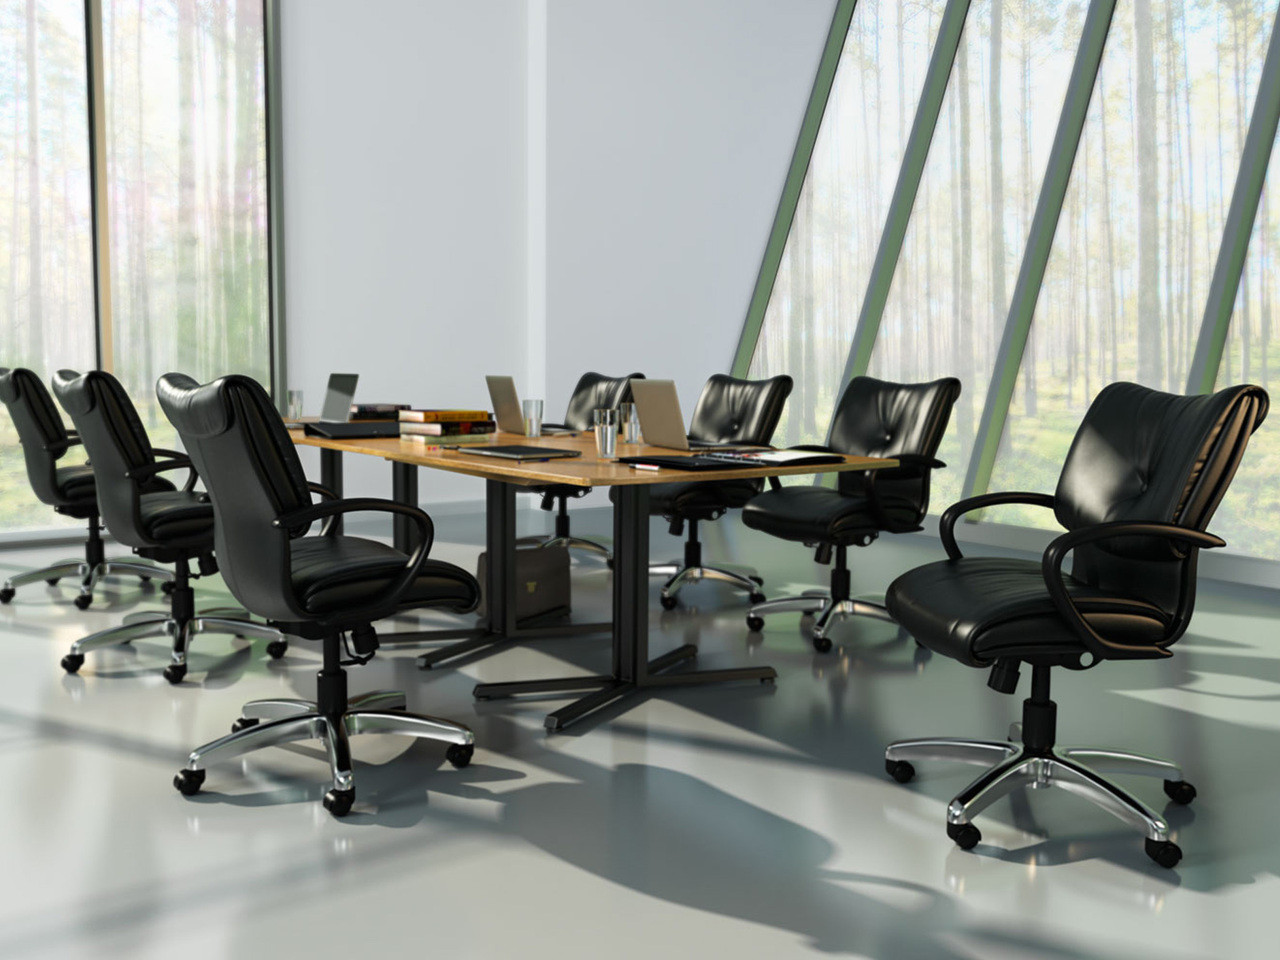 sitonit glove office furniture warehouse